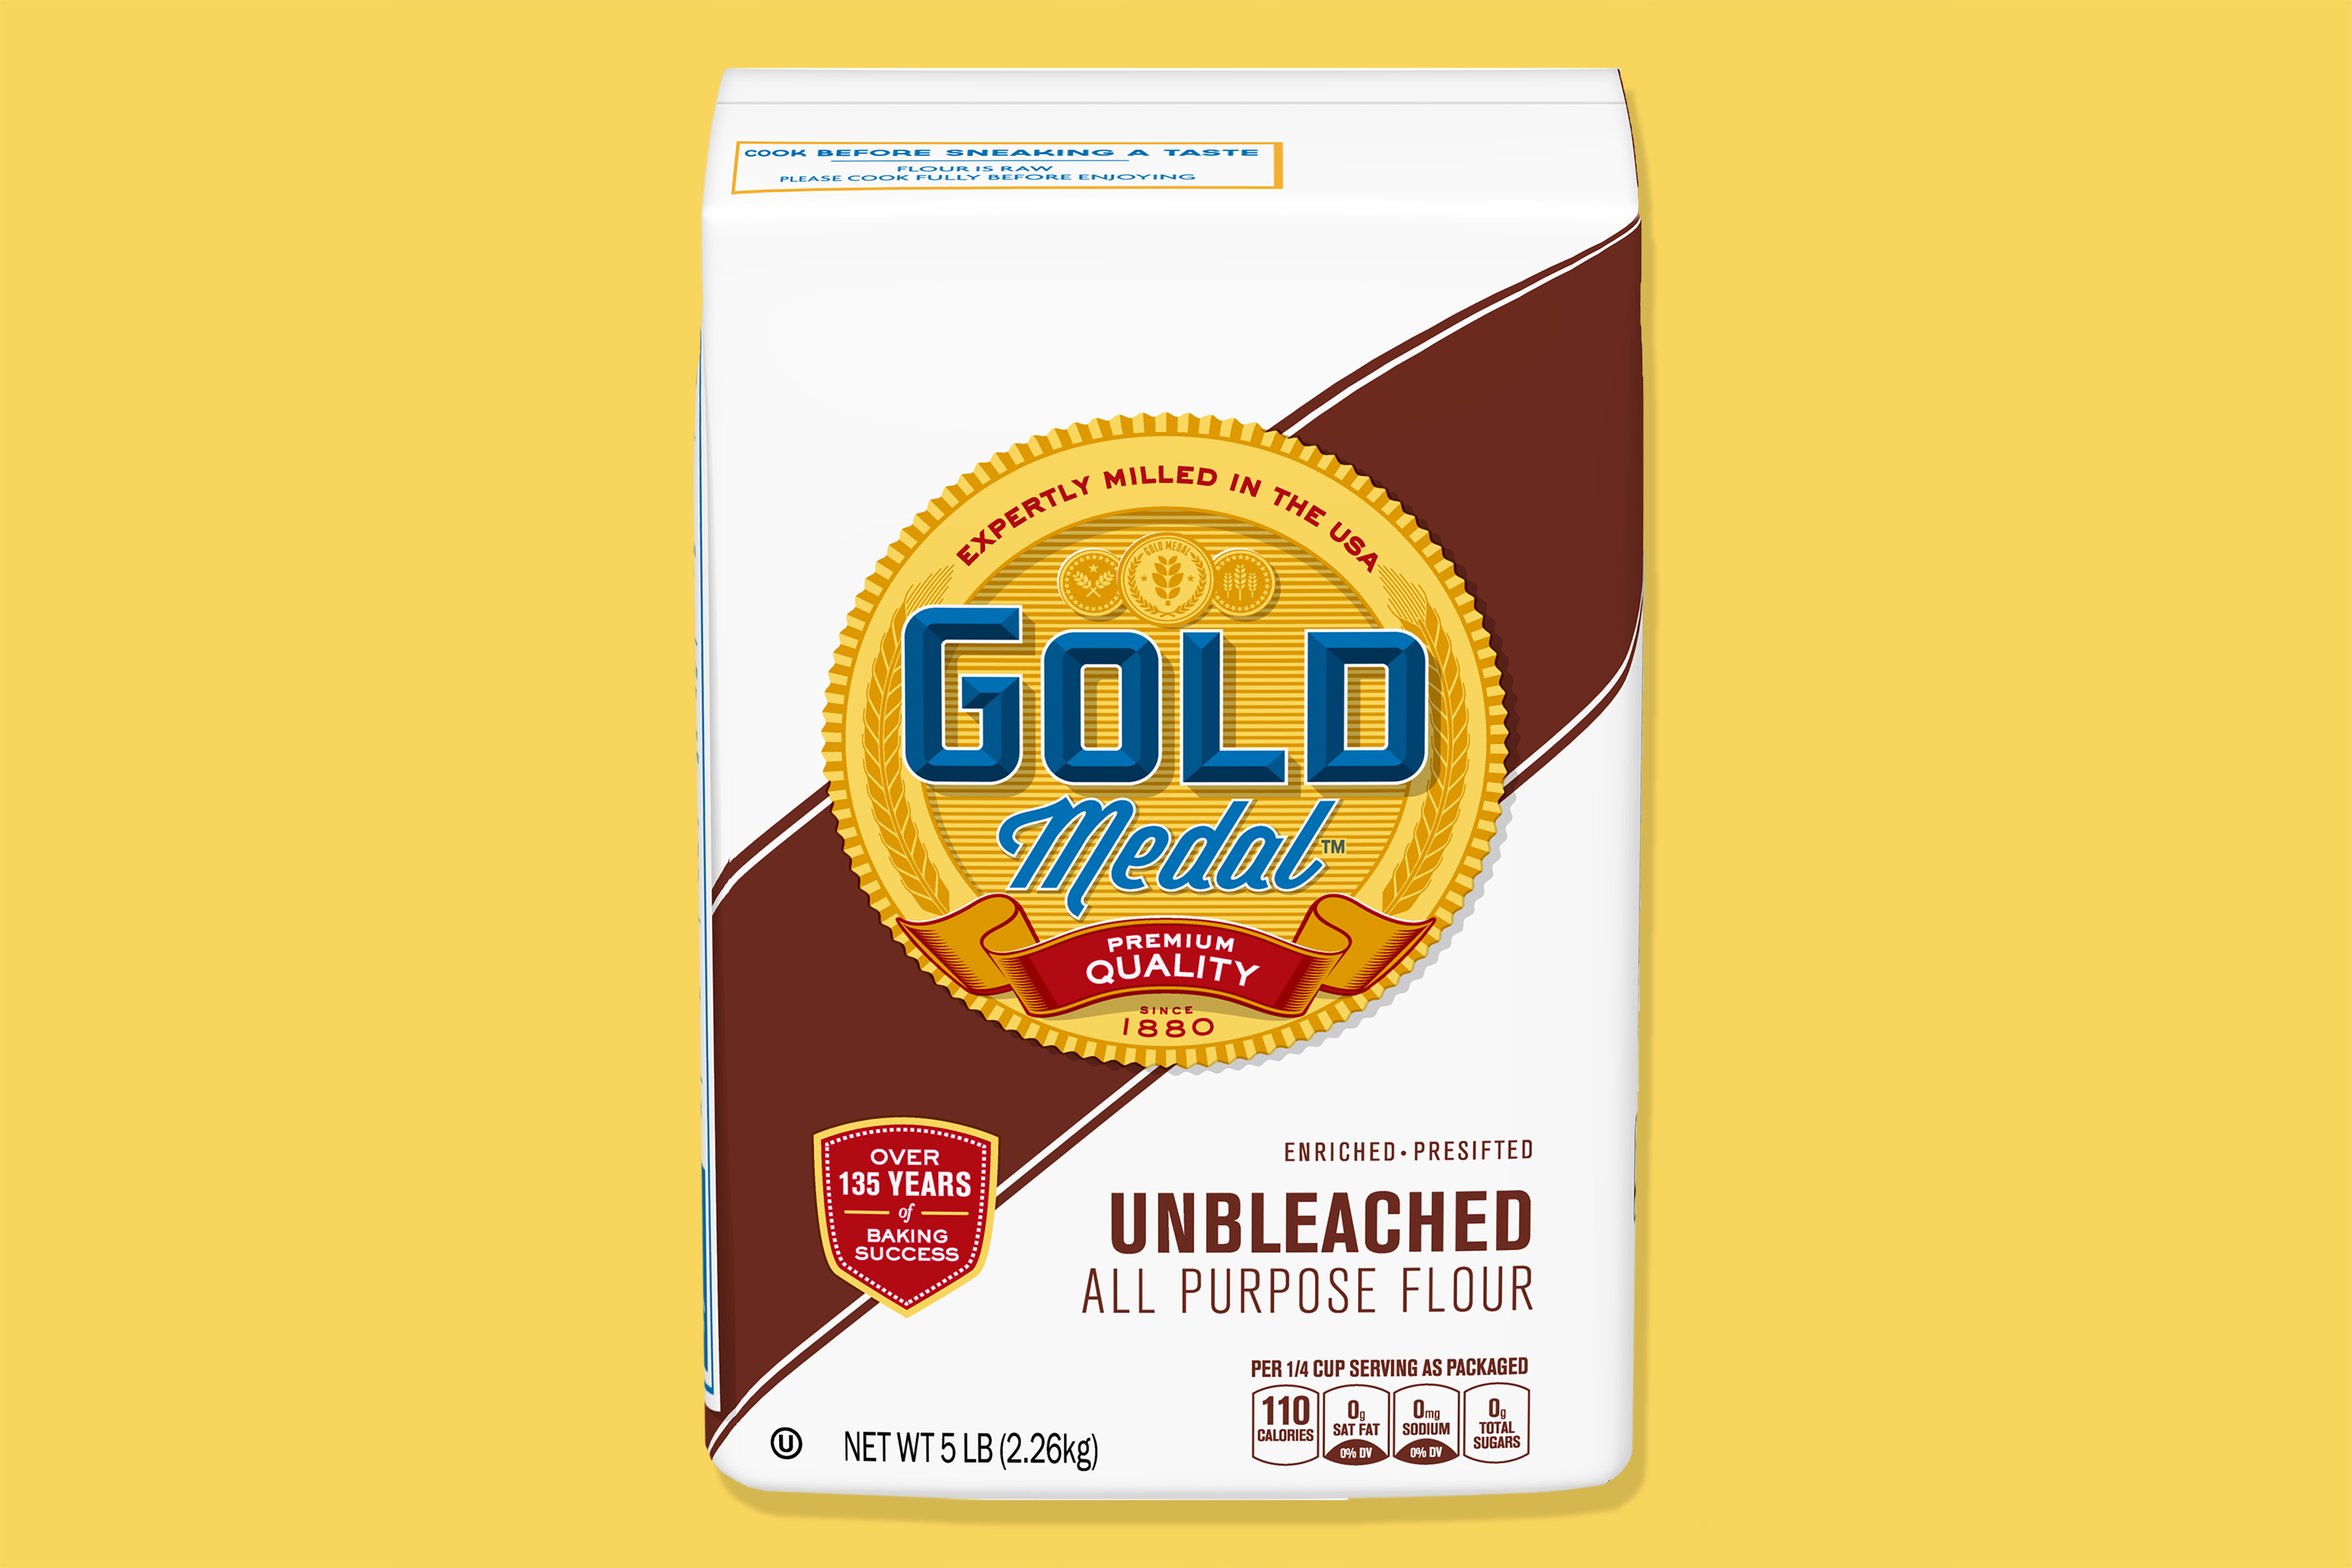 General Mills Gold Medal Unbleached Flour Recall